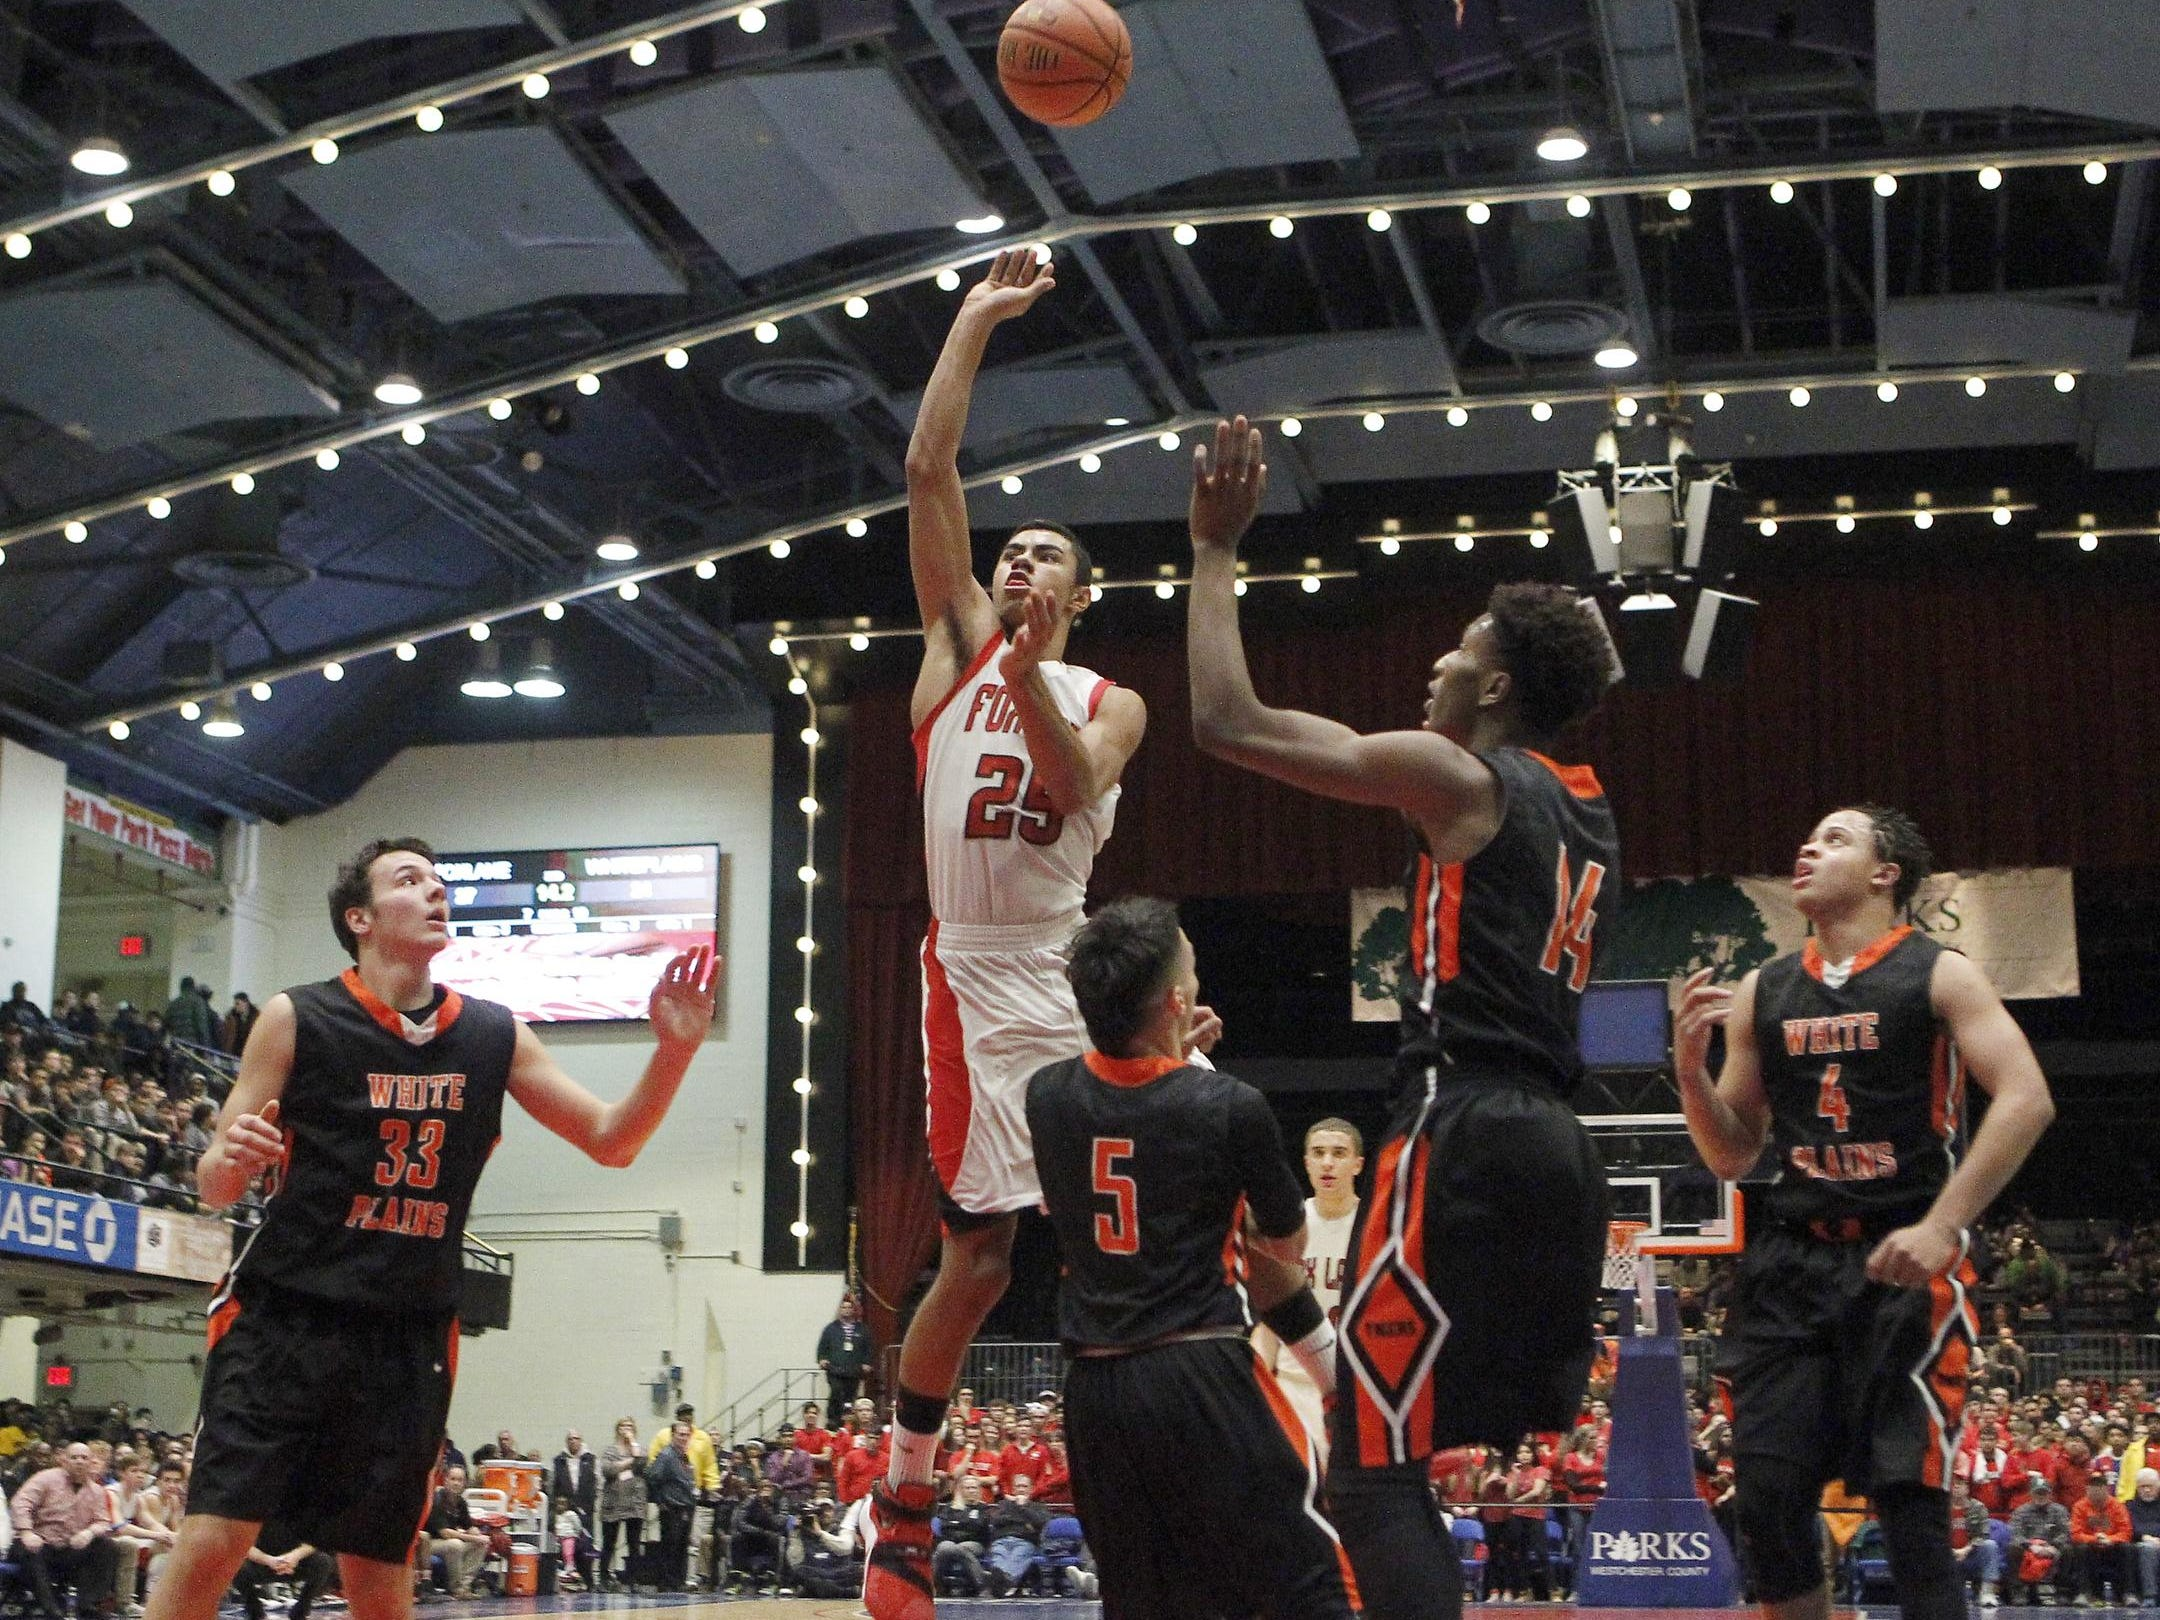 Fox Lane's Alex Olsen drives past White Plains' Luis Cartagena during a Class AA semifinal at the County Center in White Plains on Friday.